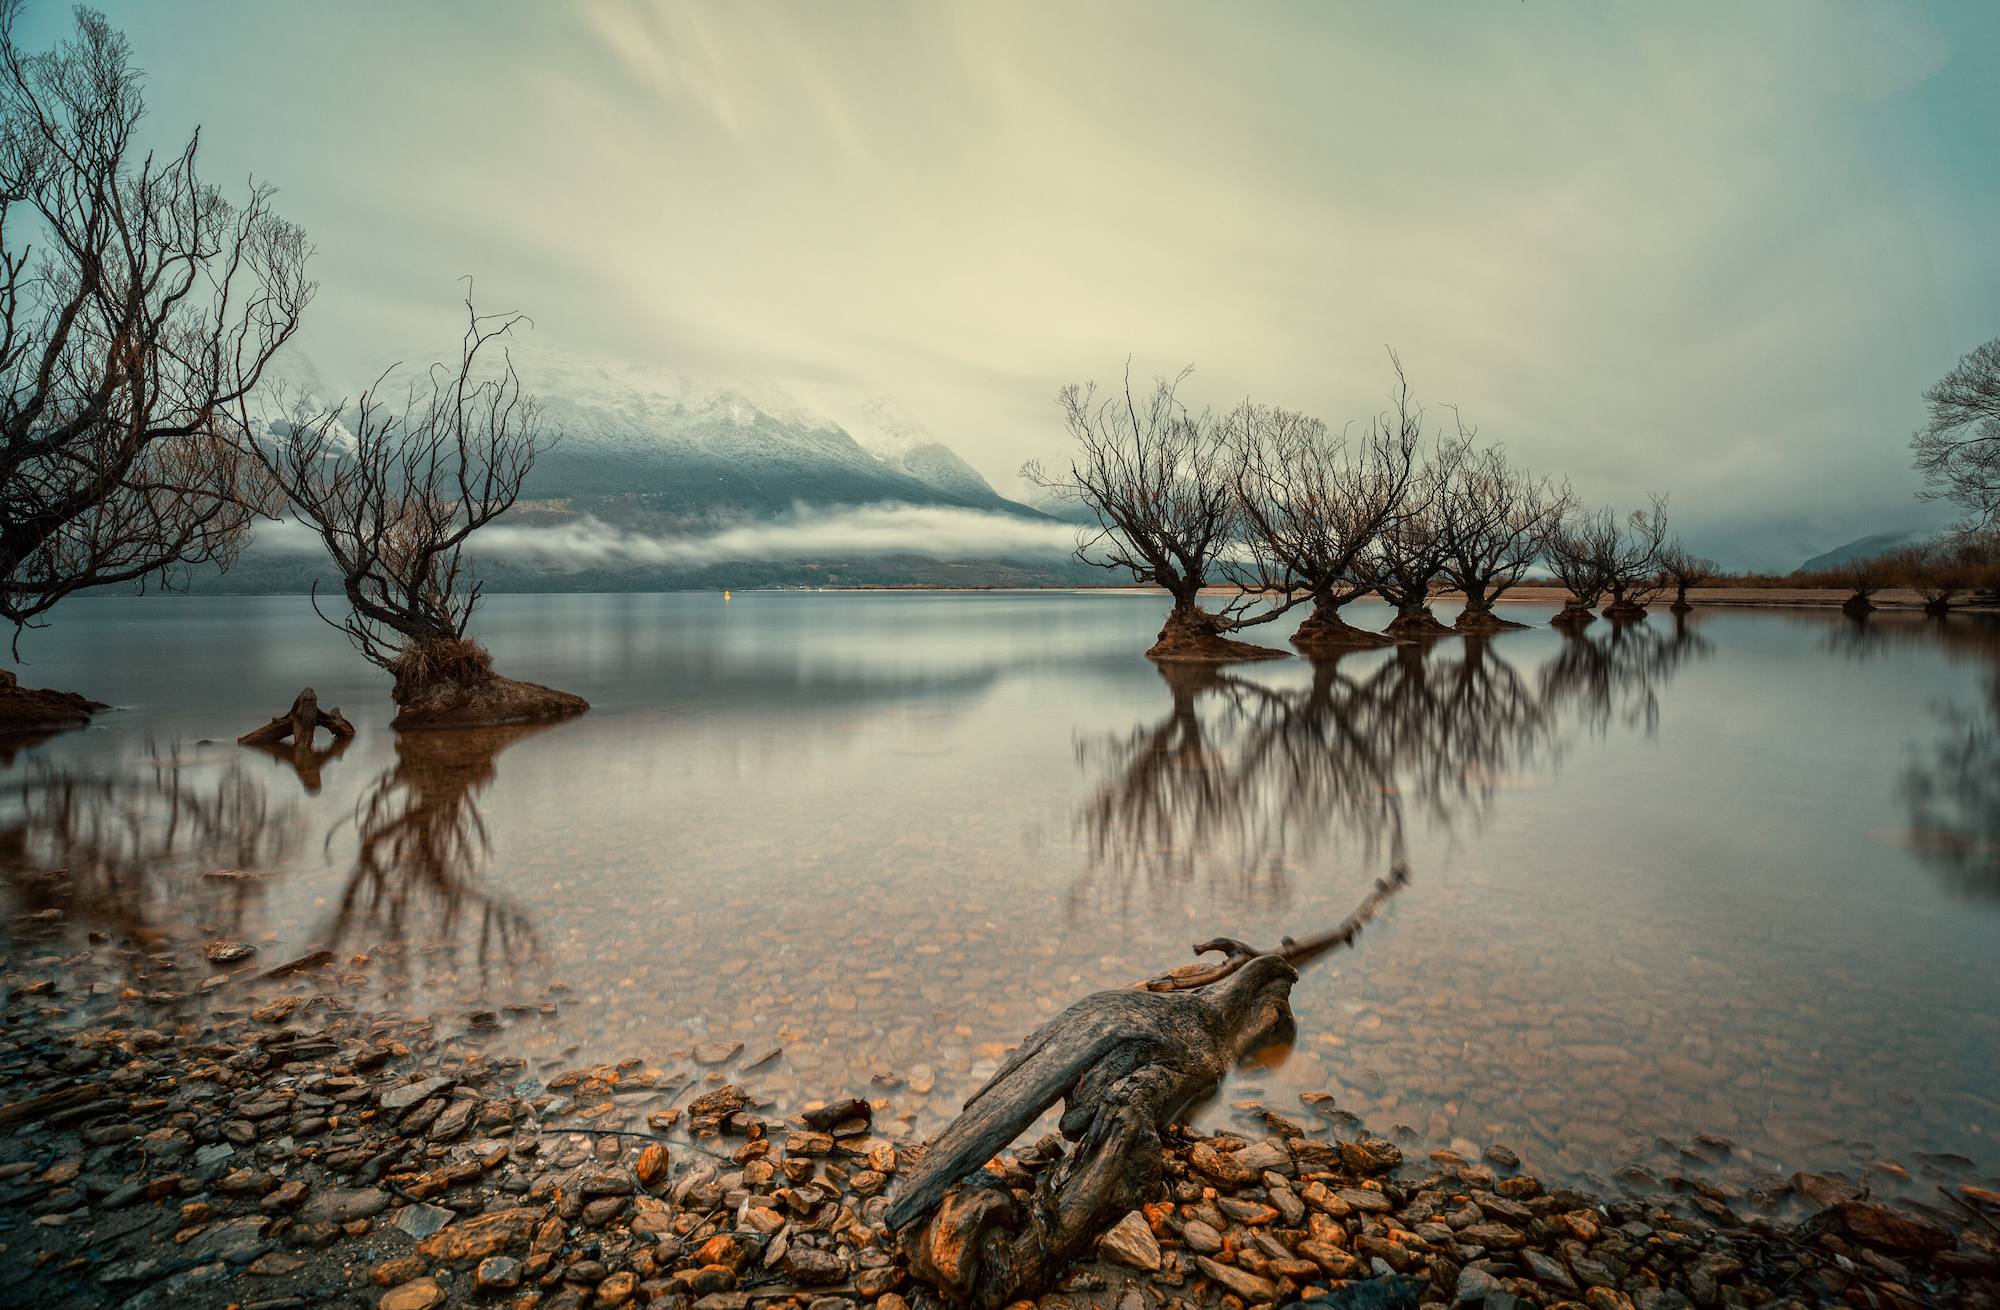 Landscape composition of the Willows of Glenorchy, New Zealand, on a moody rainy morning